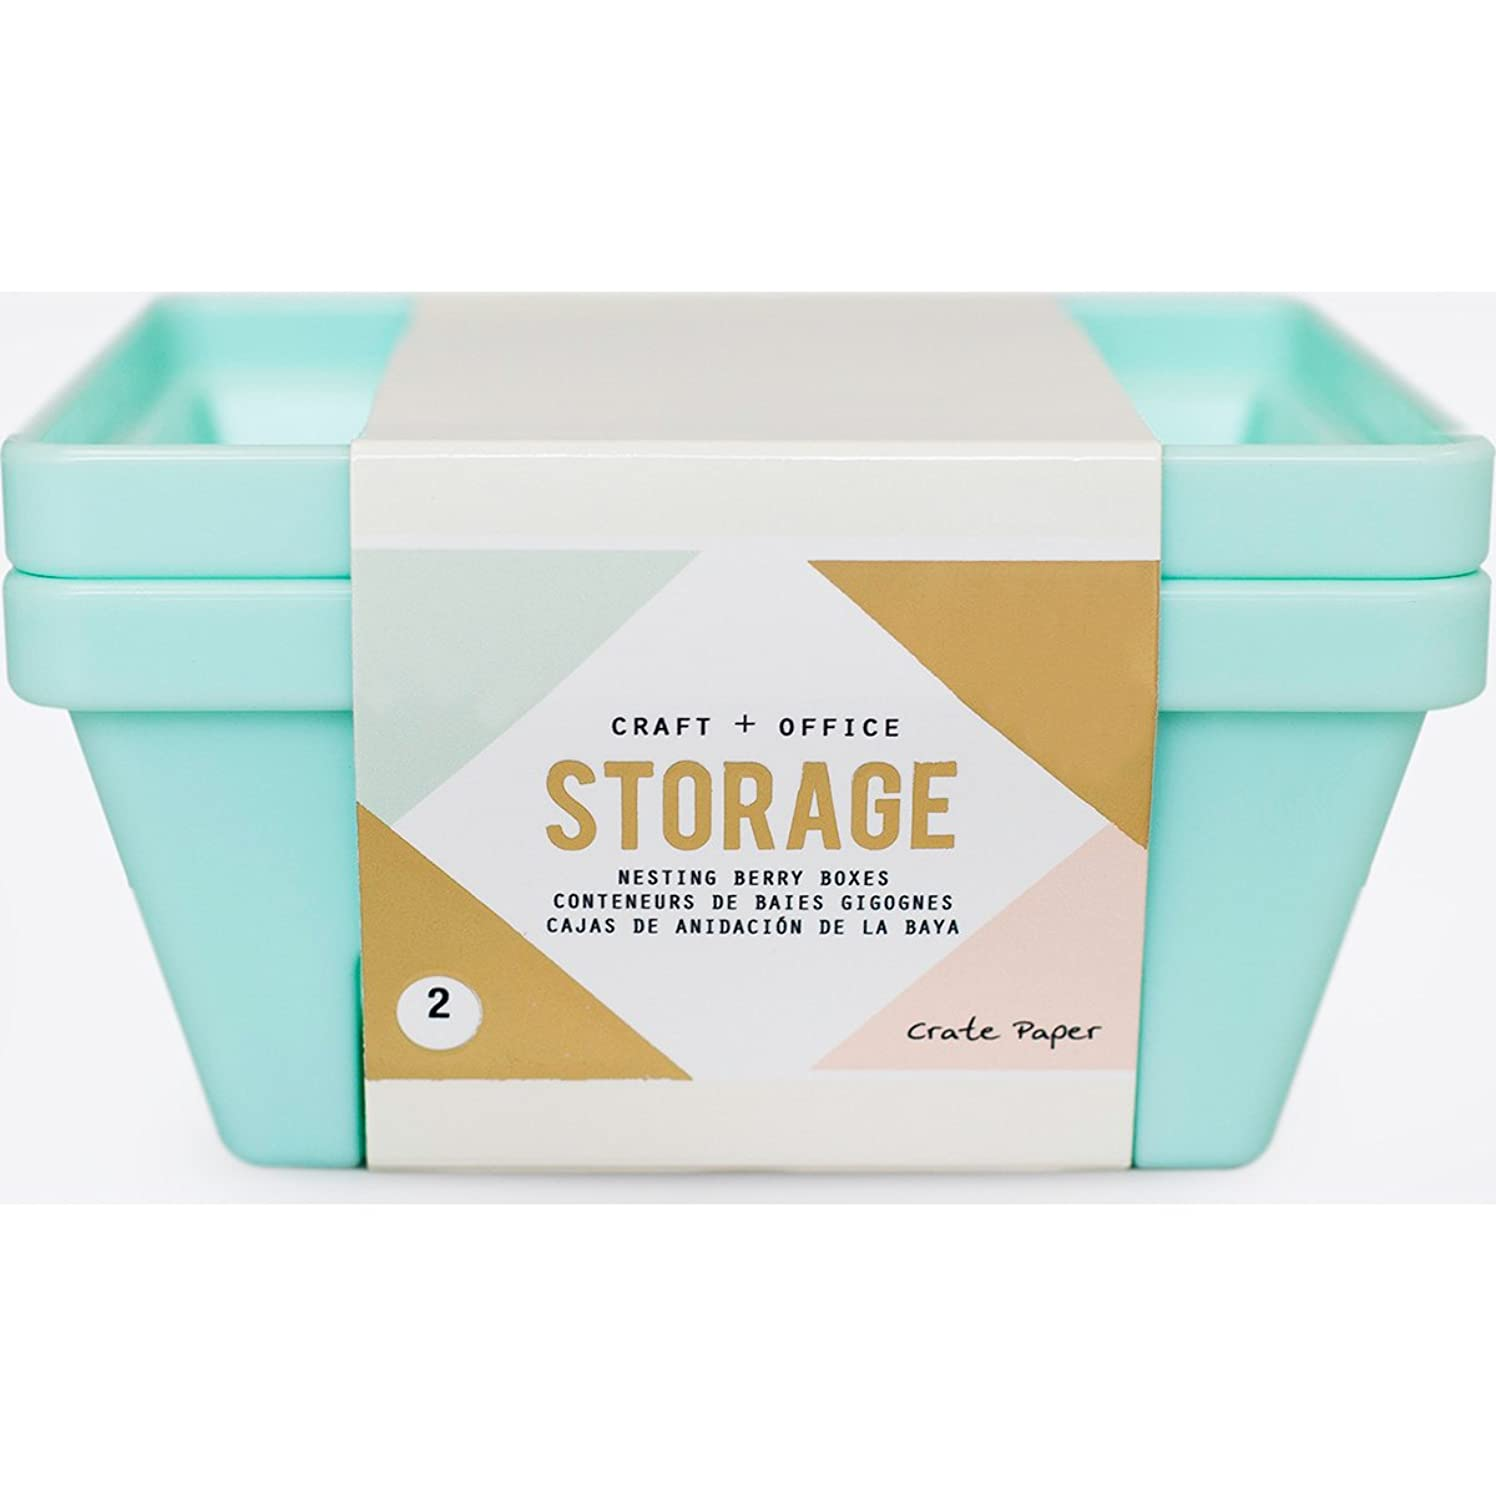 American Crafts Crate Paper Desktop Storage Nesting Berry Containers 2 Piece